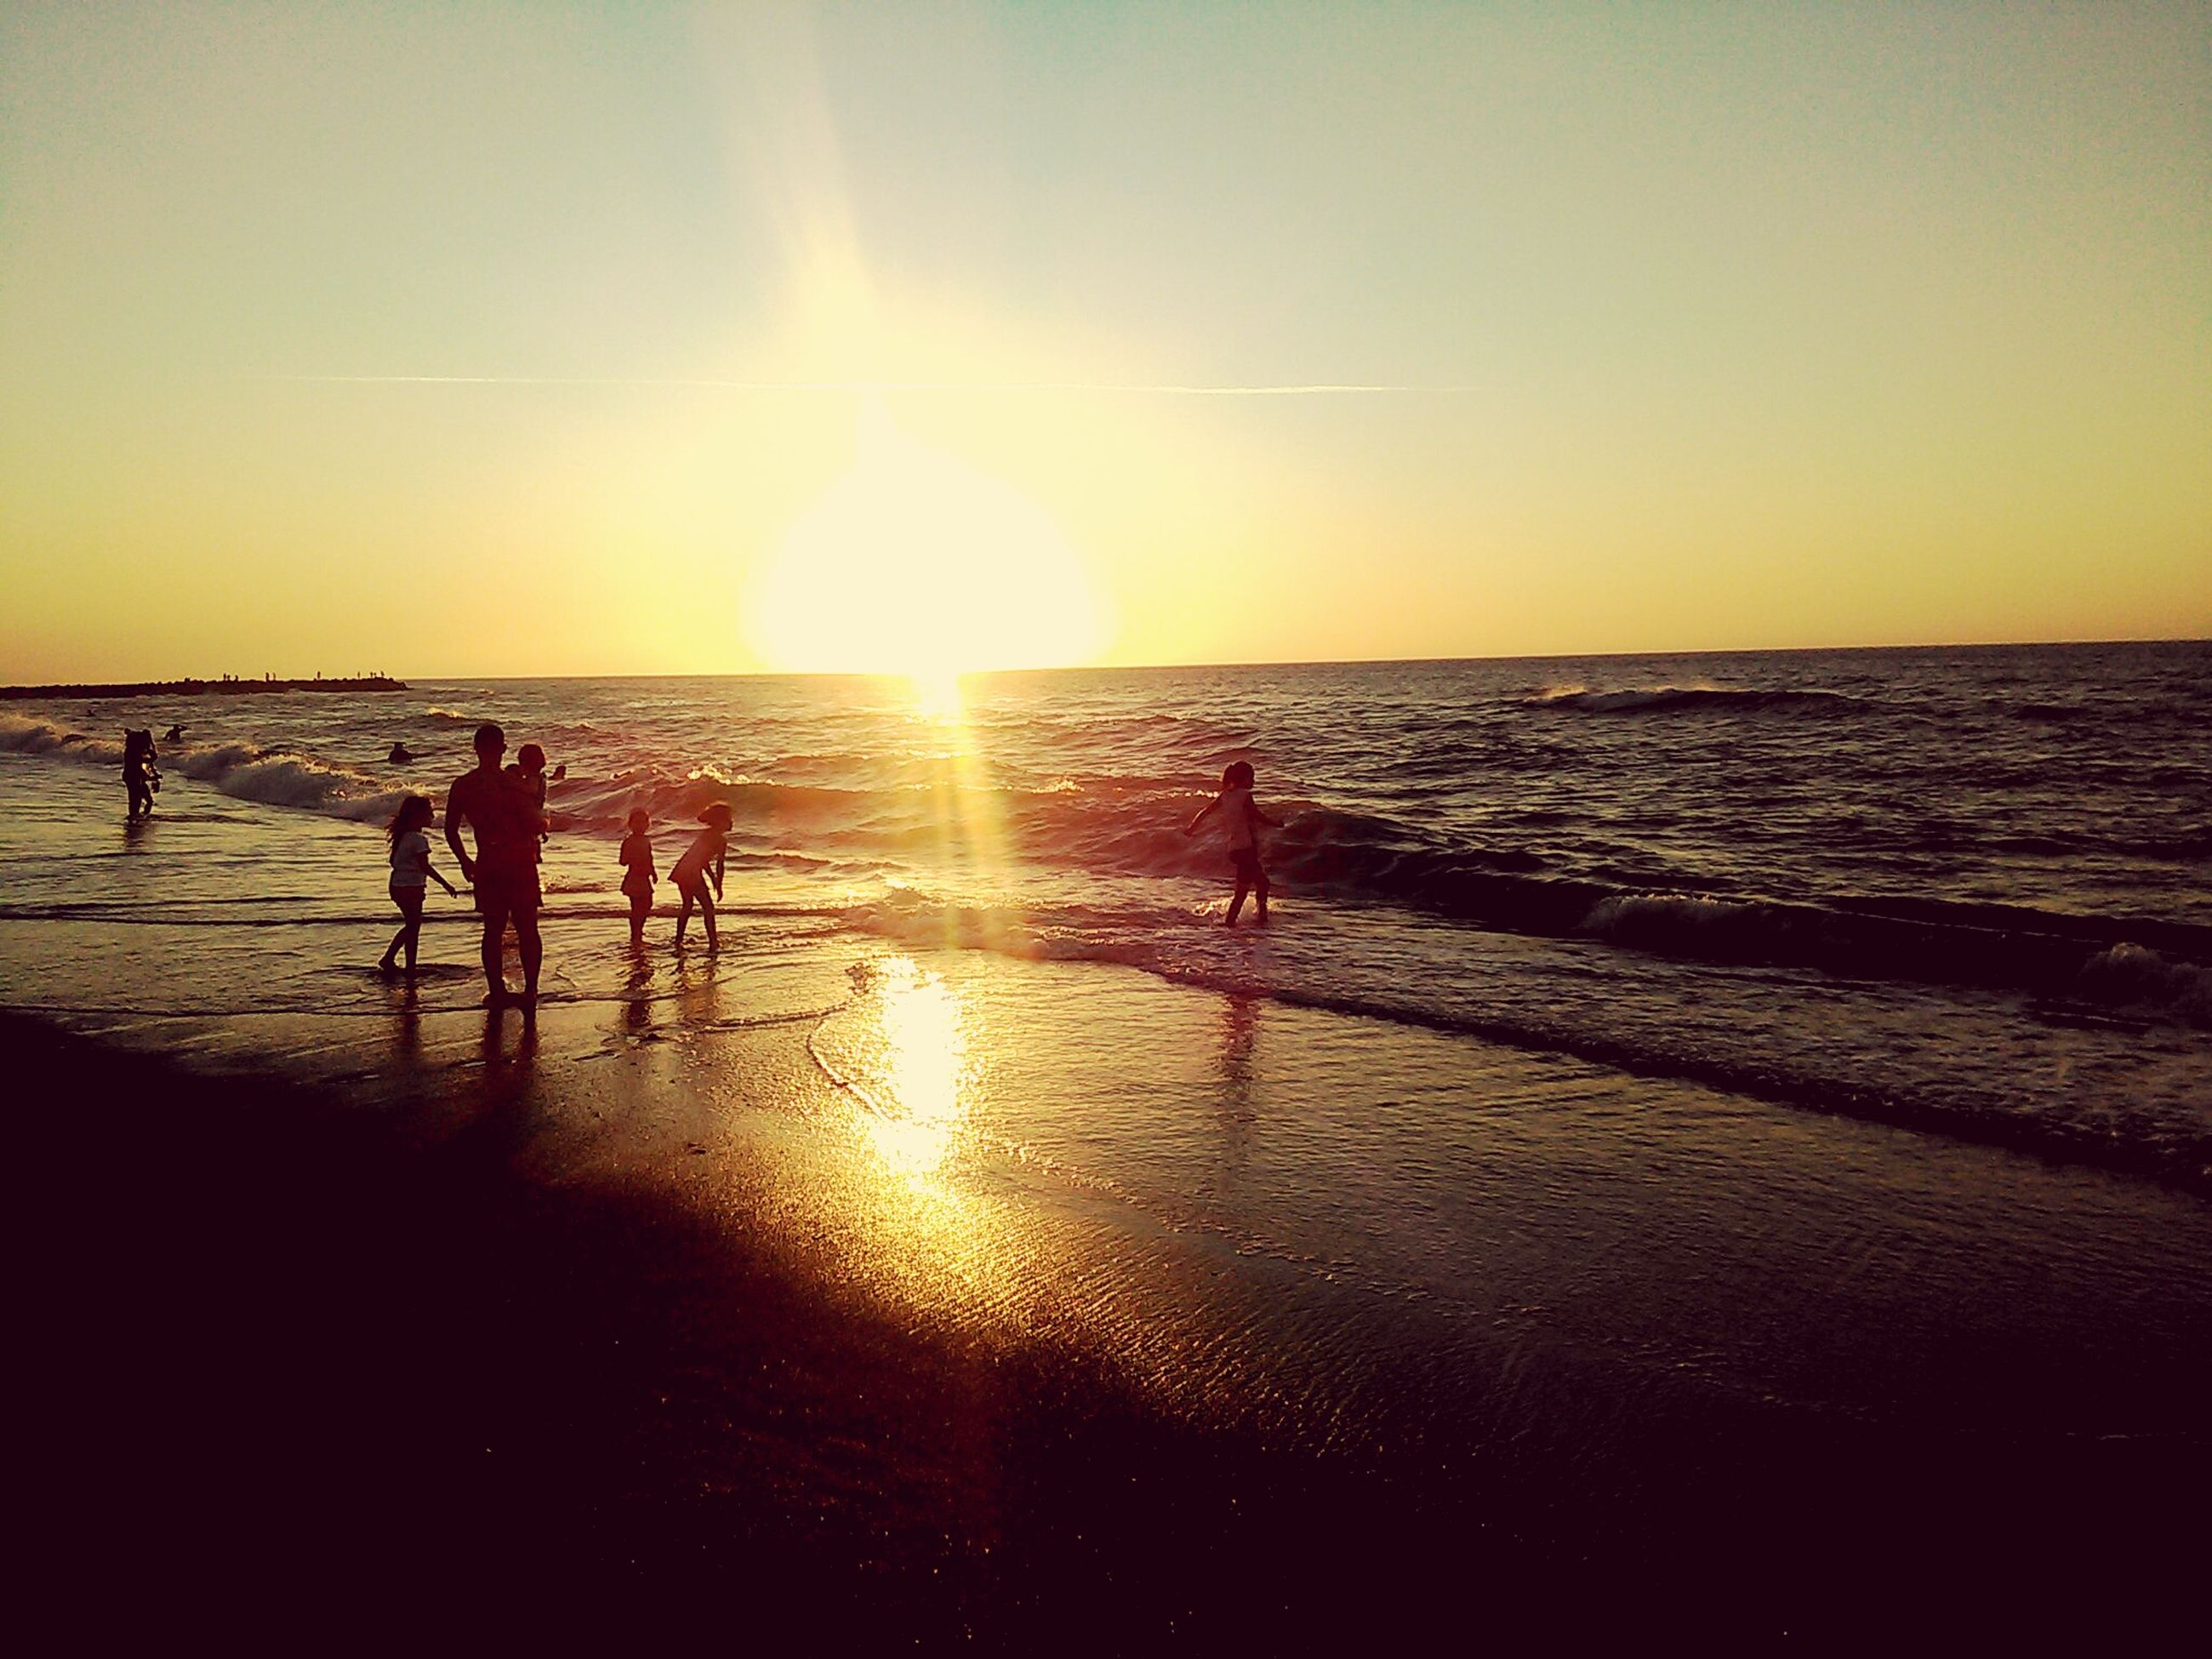 beach, sea, water, sunset, horizon over water, sun, reflection, scenics, shore, silhouette, sunlight, vacations, tranquil scene, tranquility, leisure activity, beauty in nature, lifestyles, sand, orange color, sky, sunbeam, nature, tourist, coastline, calm, majestic, tourism, lens flare, outline, person, summer, outdoors